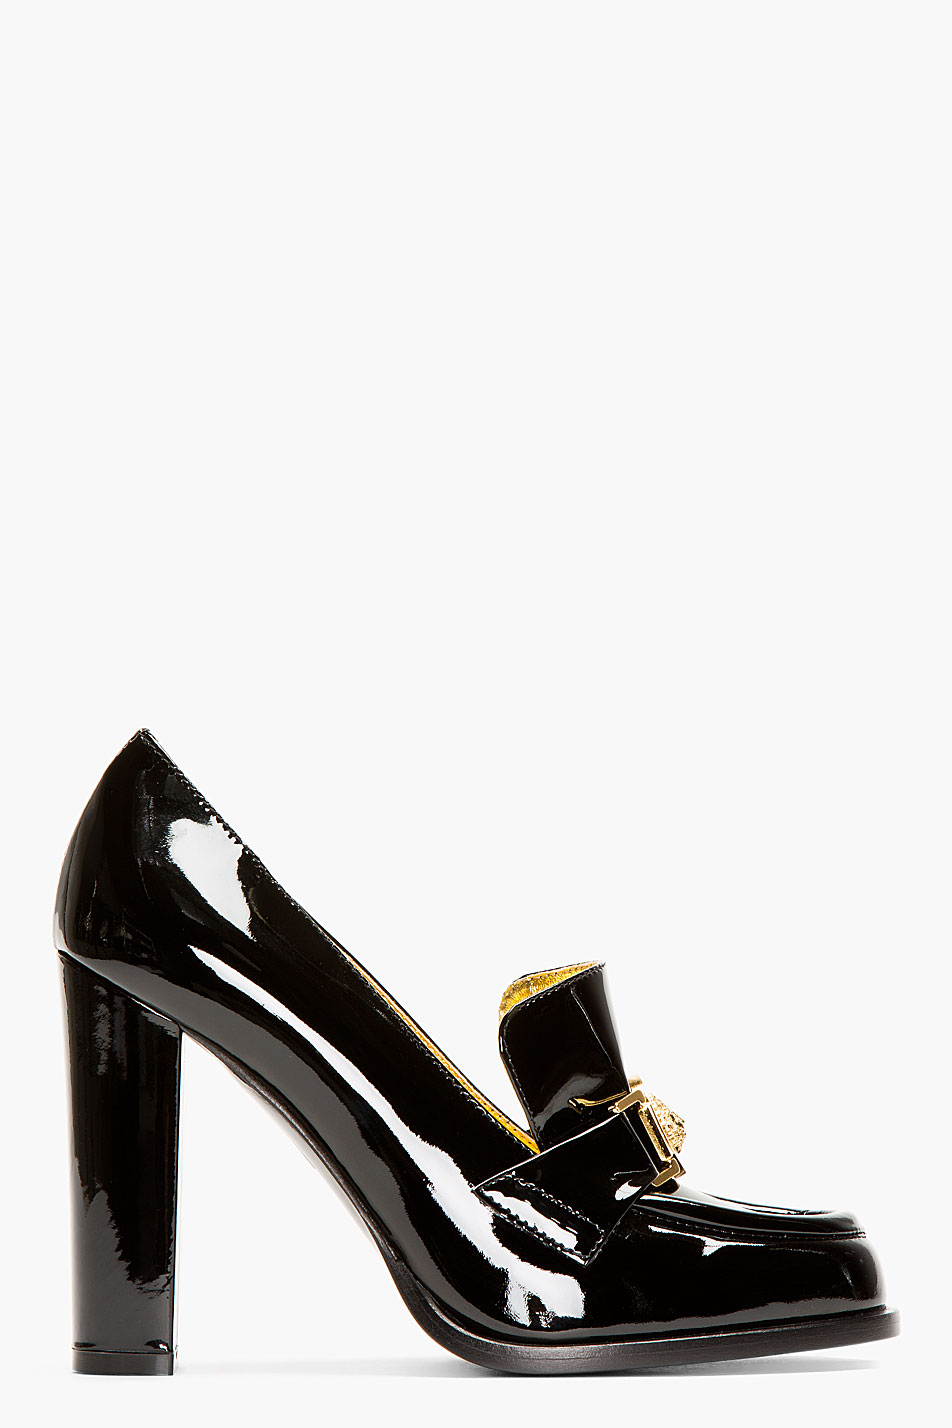 Versus Black Patent Leather Heeled Loafers in Black